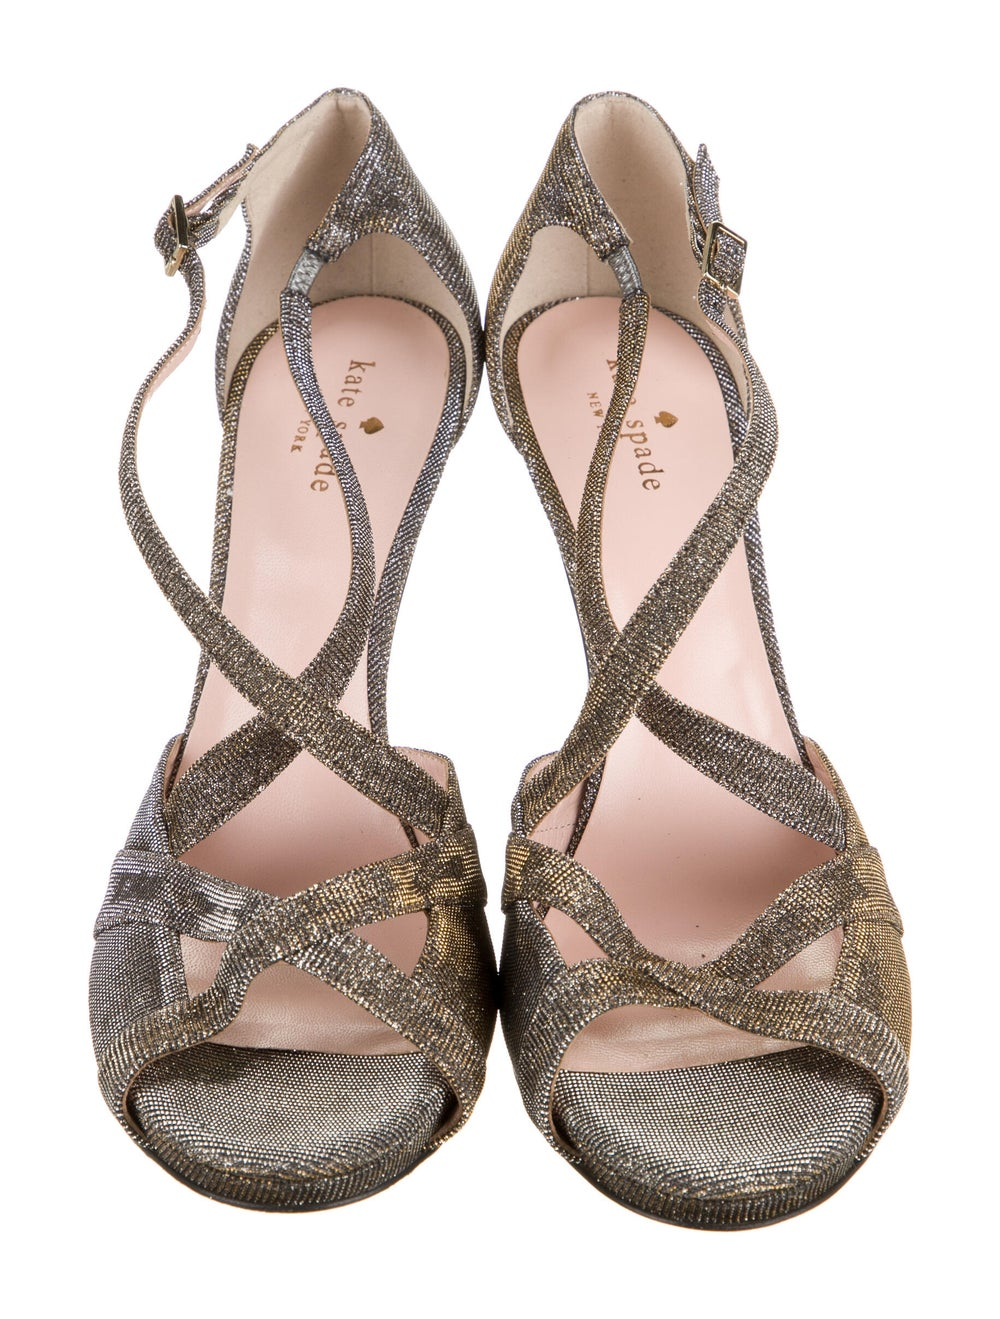 Kate Spade New York Sandals Silver - image 3